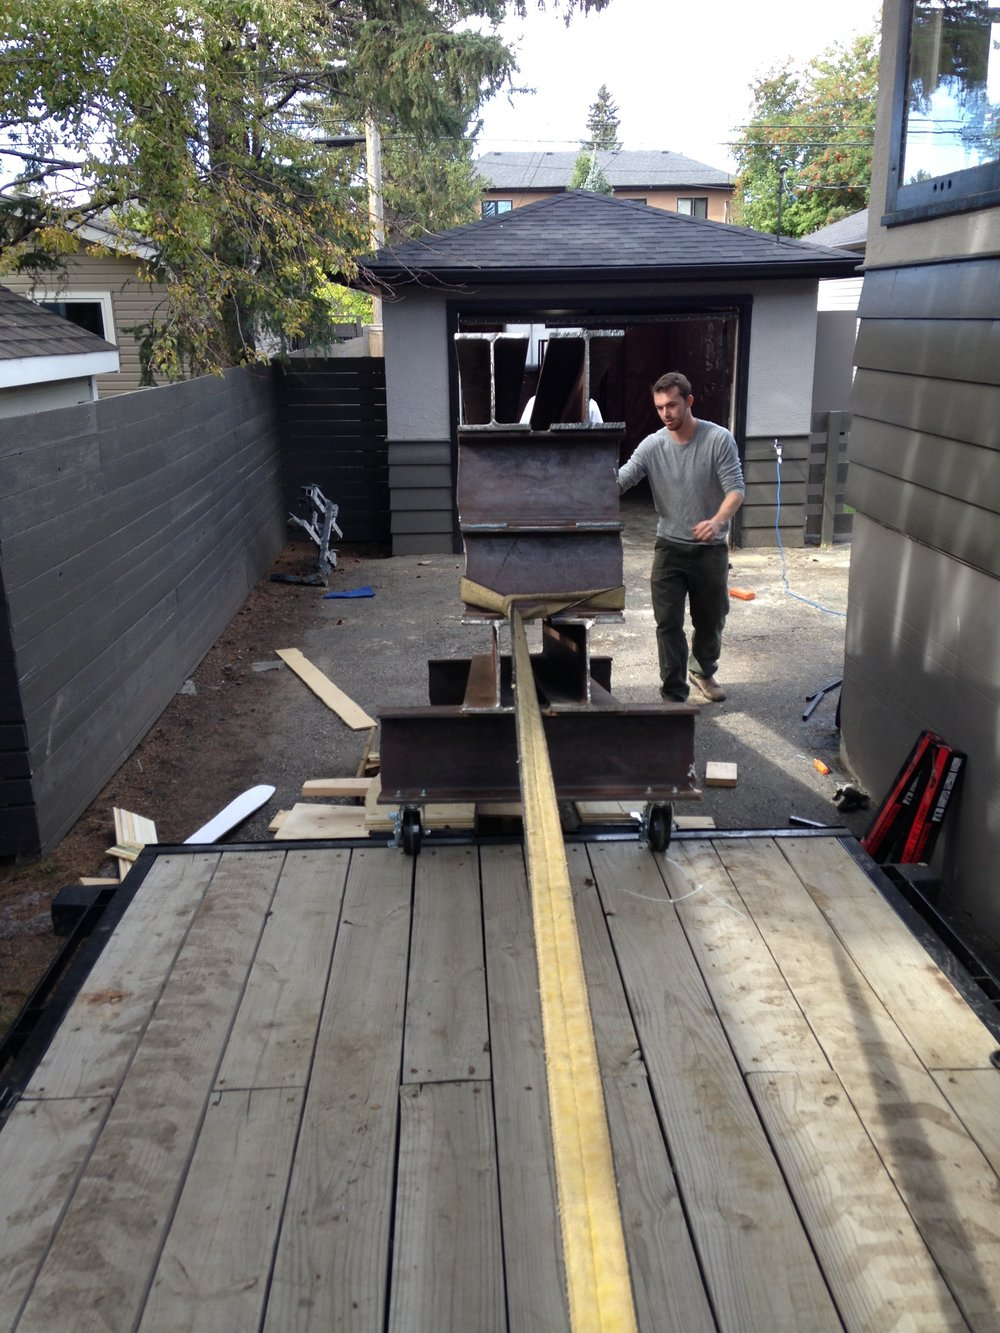 Getting Ronda (our ski press) onto the flatbed trailer...